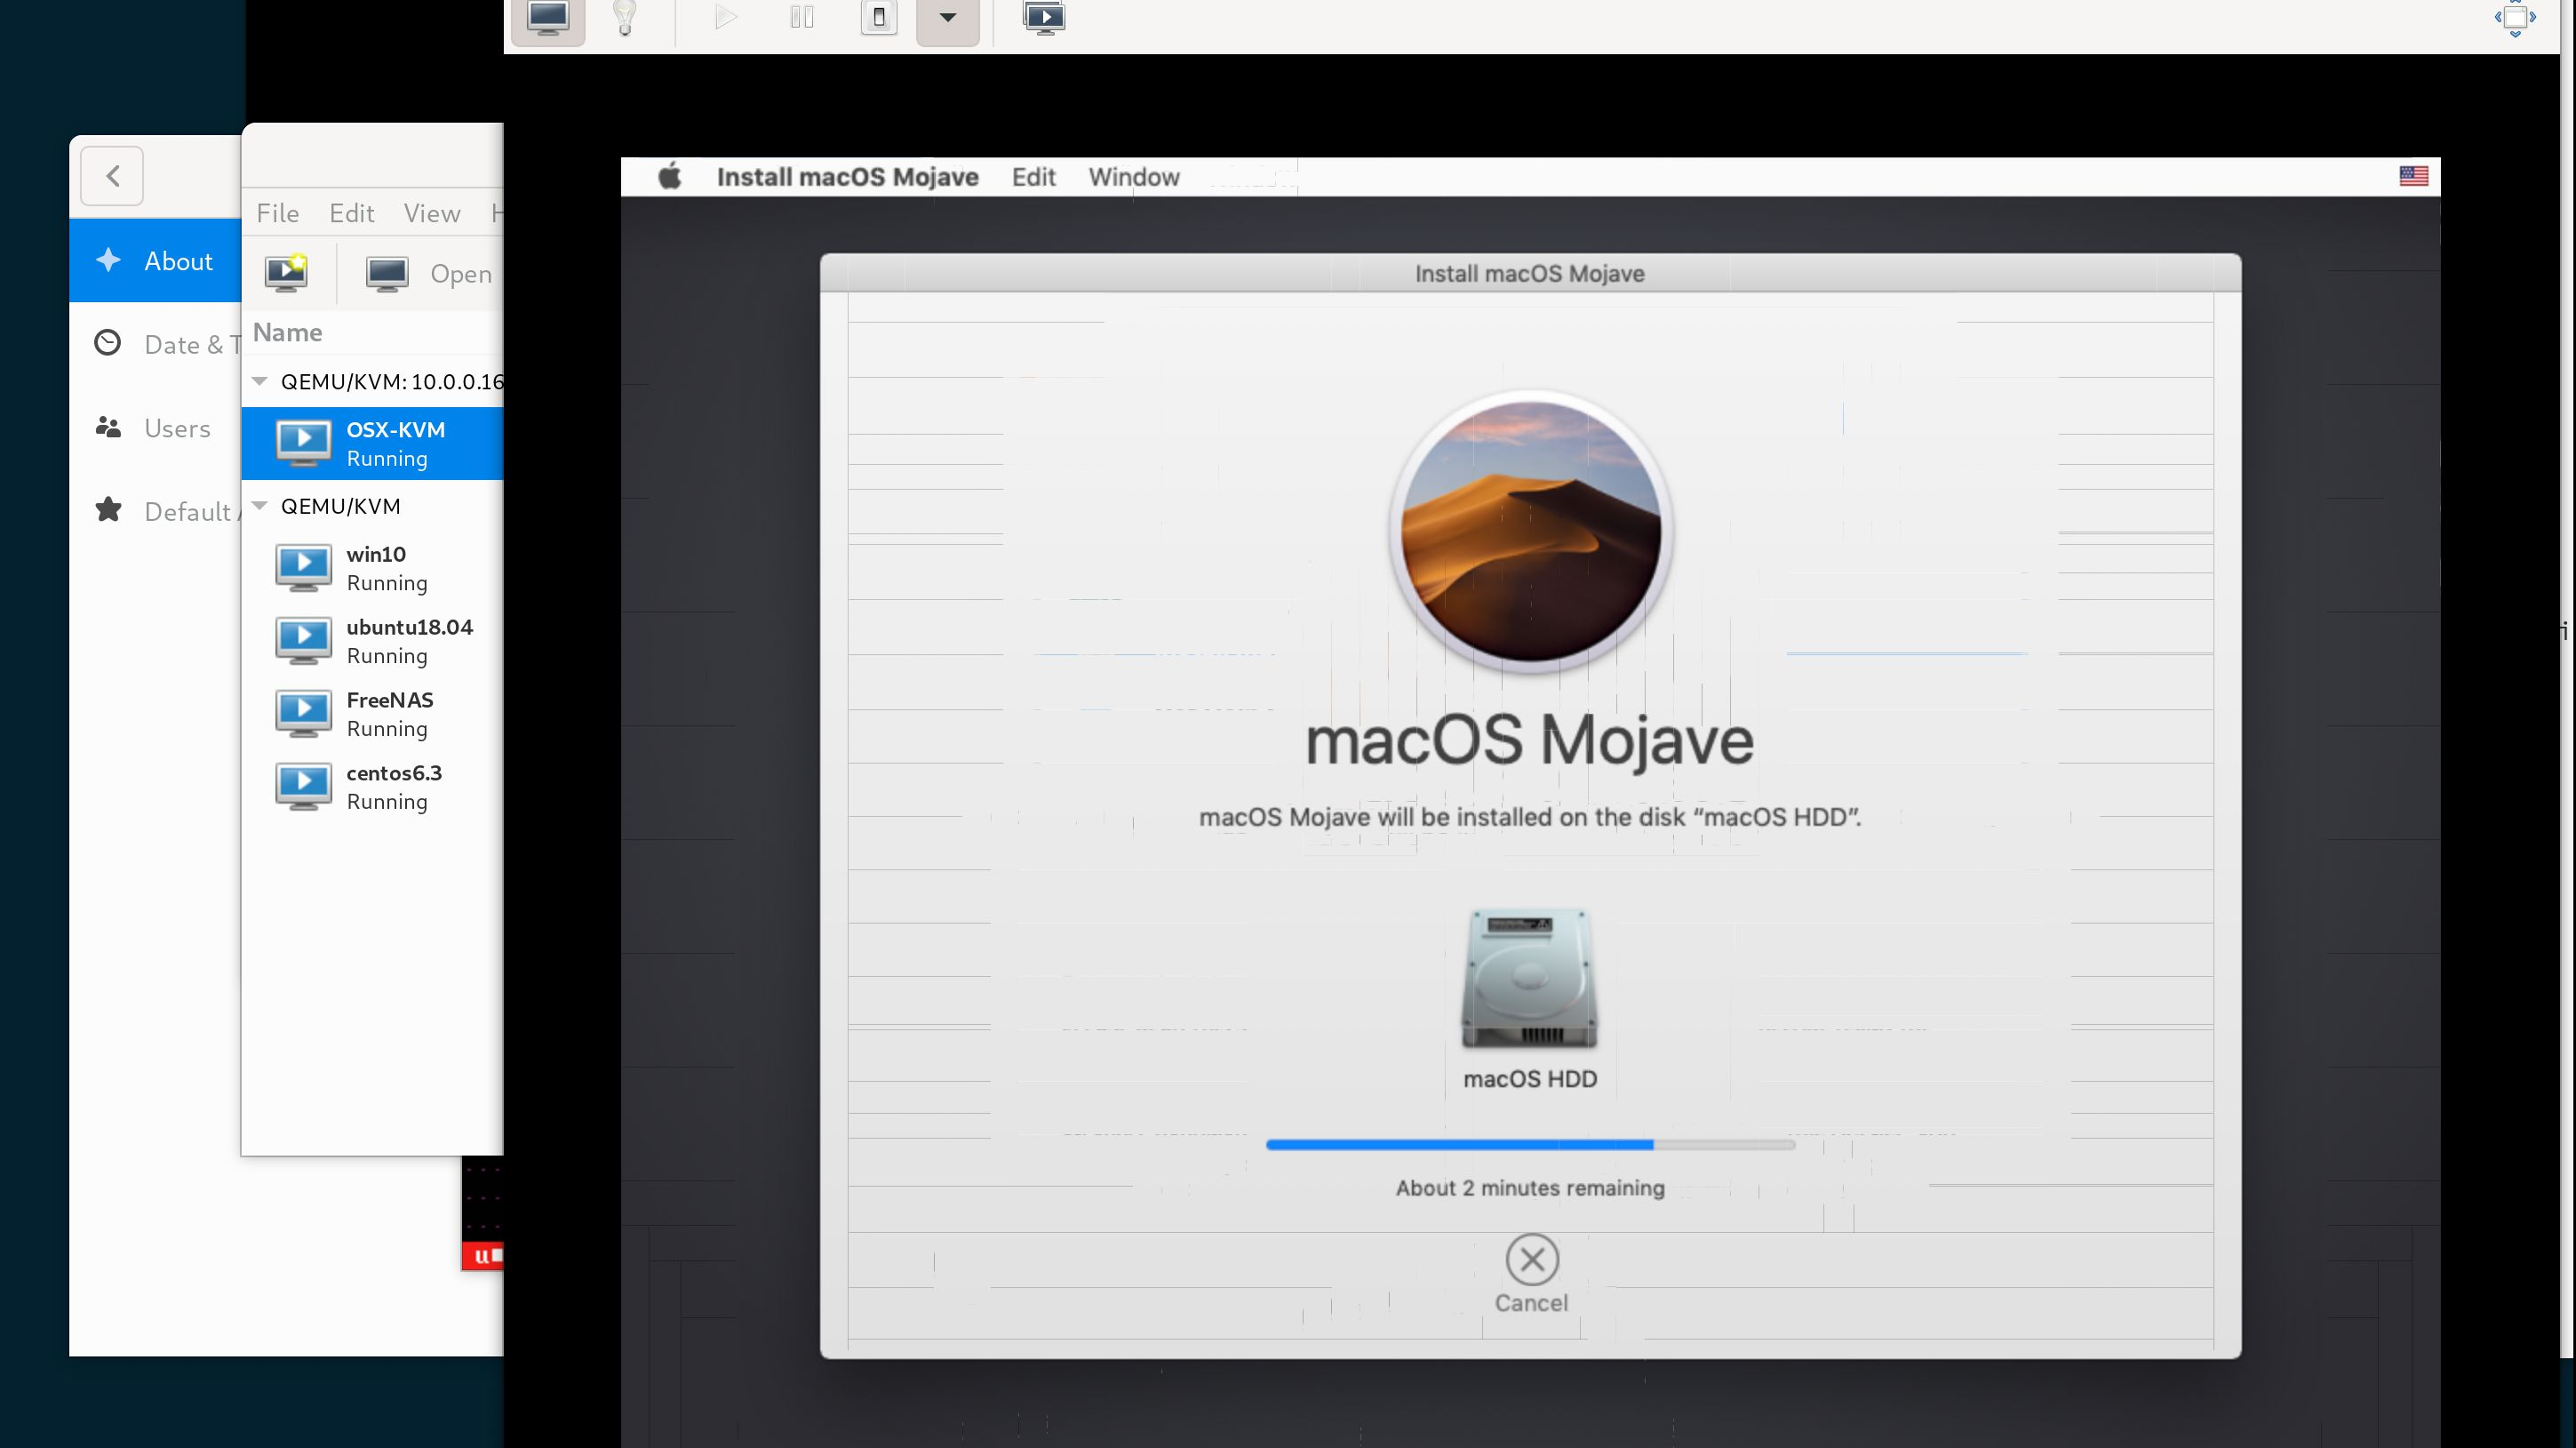 Hackintosh Kvm